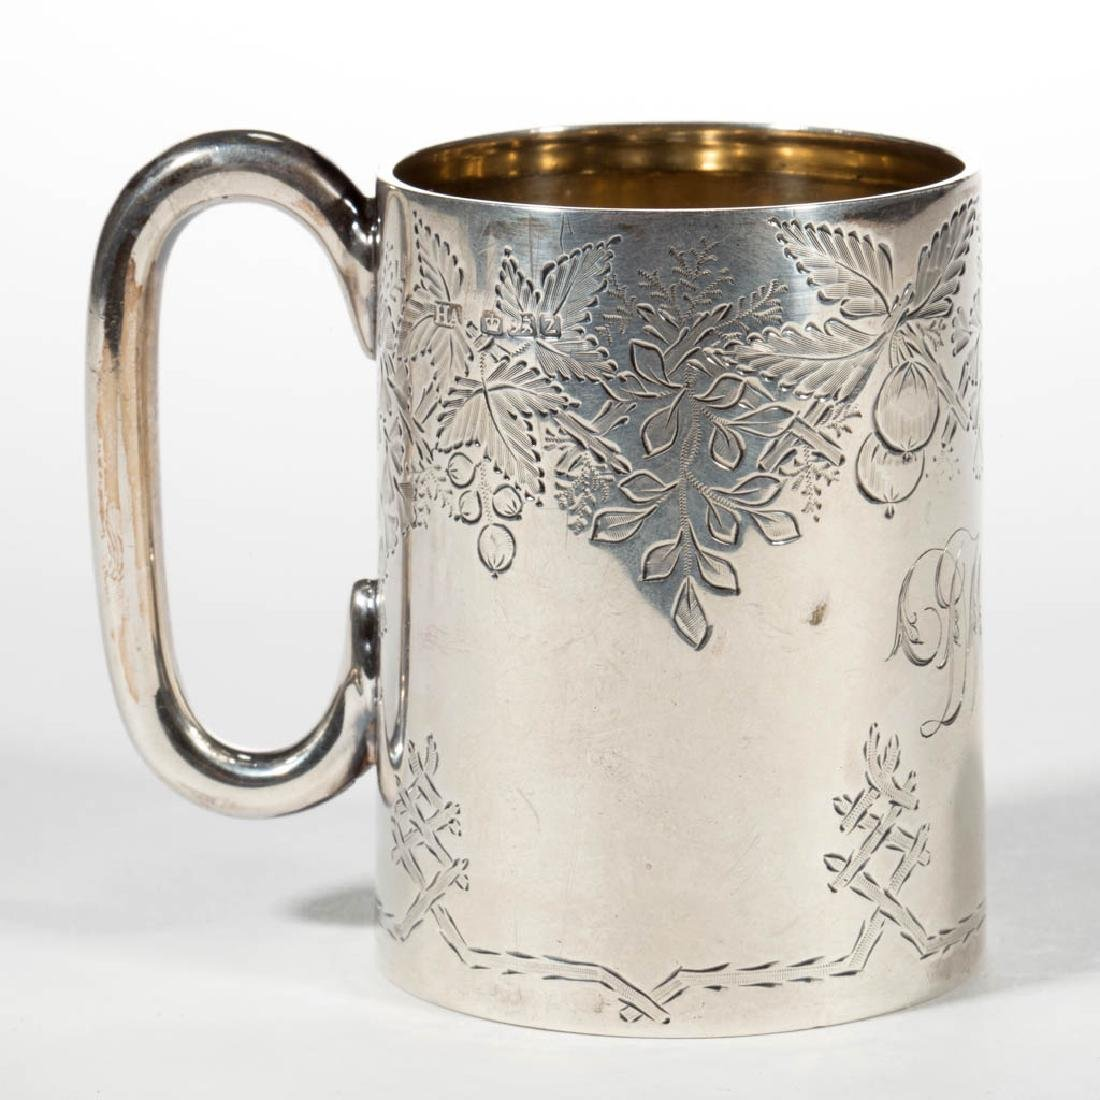 ENGLISH STERLING SILVER CHILD'S MUG / CUP